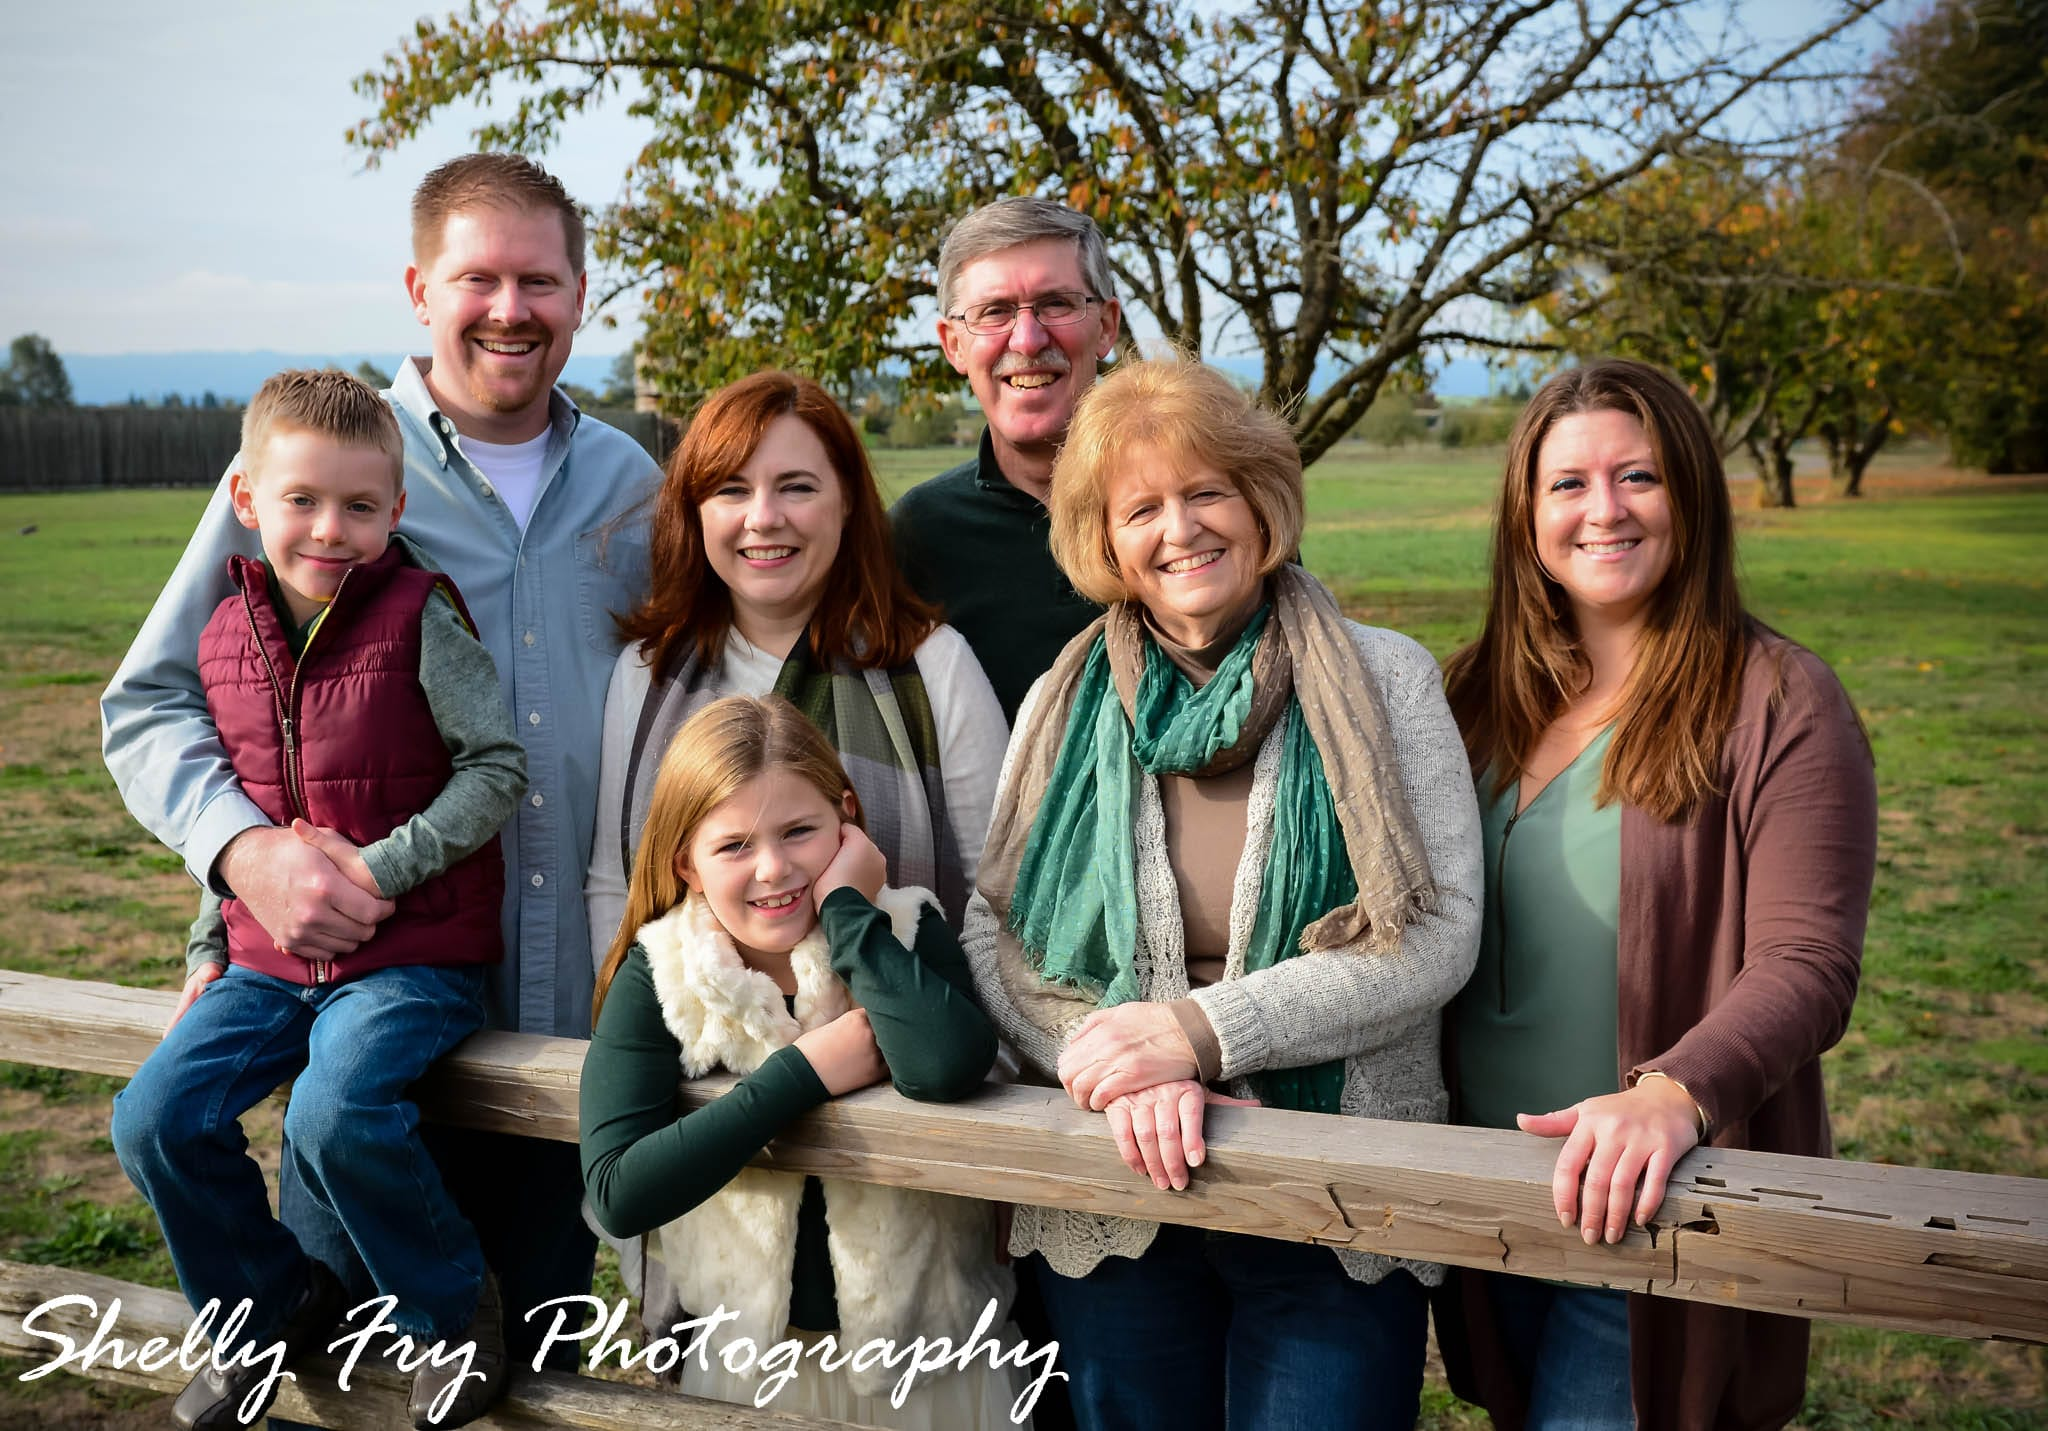 dodge family family session shelly fry photography. Black Bedroom Furniture Sets. Home Design Ideas